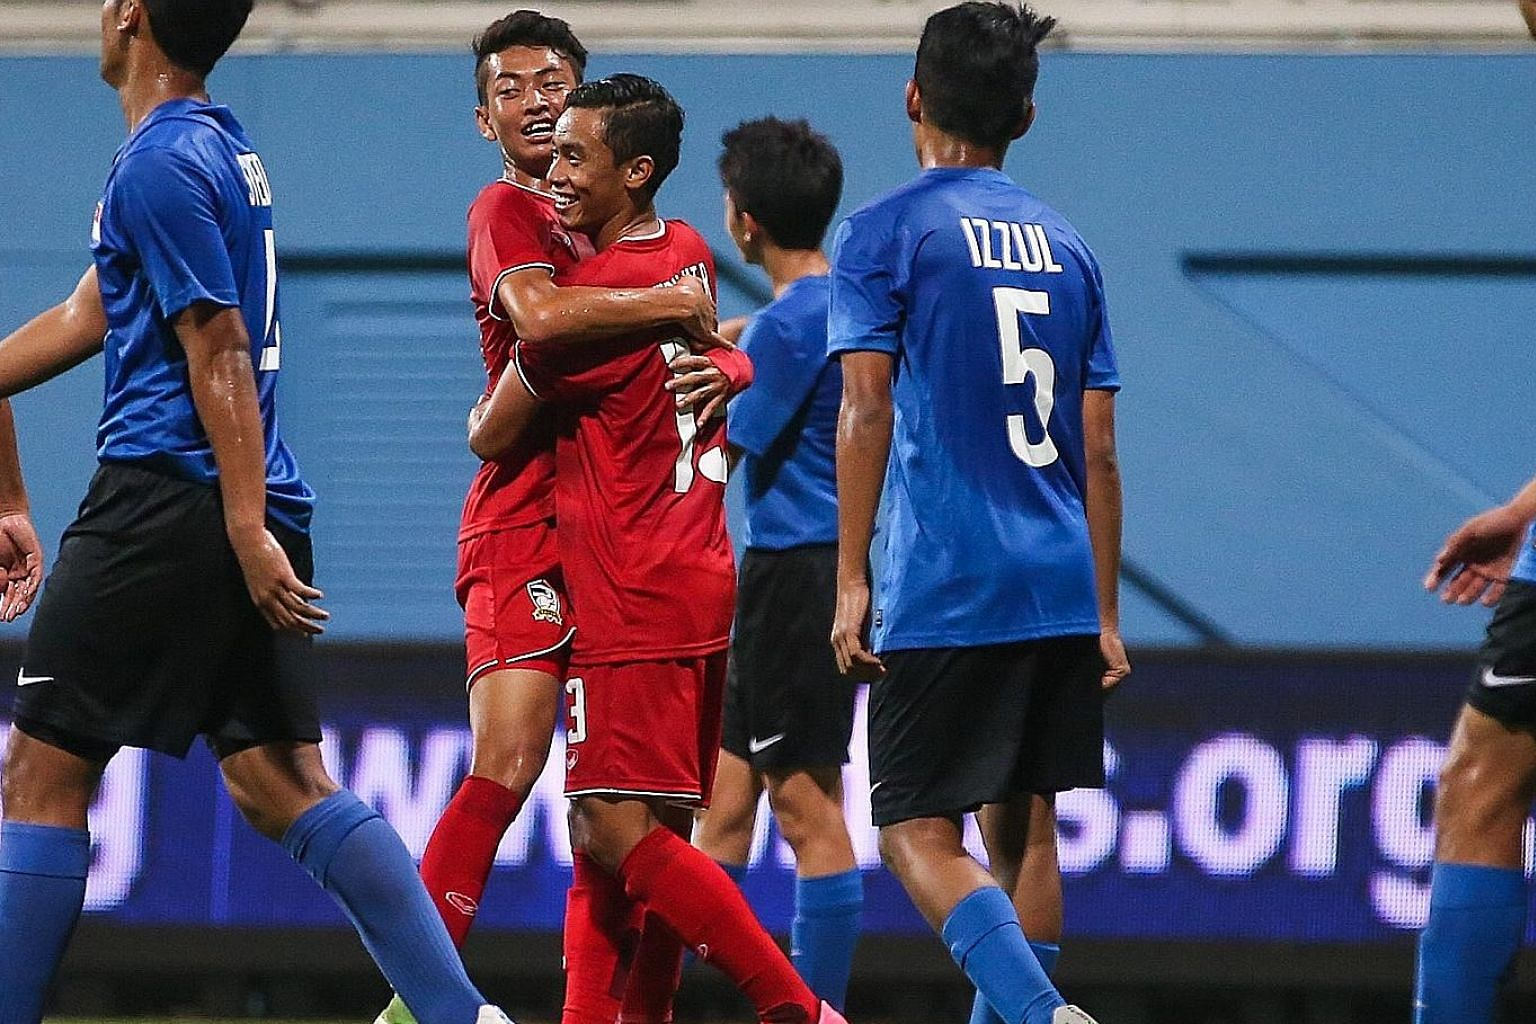 Thai players (in red) celebrating another goal during their 5-0 victory over Singapore in their AFC U-16 Championship qualifier at Jalan Besar Stadium.